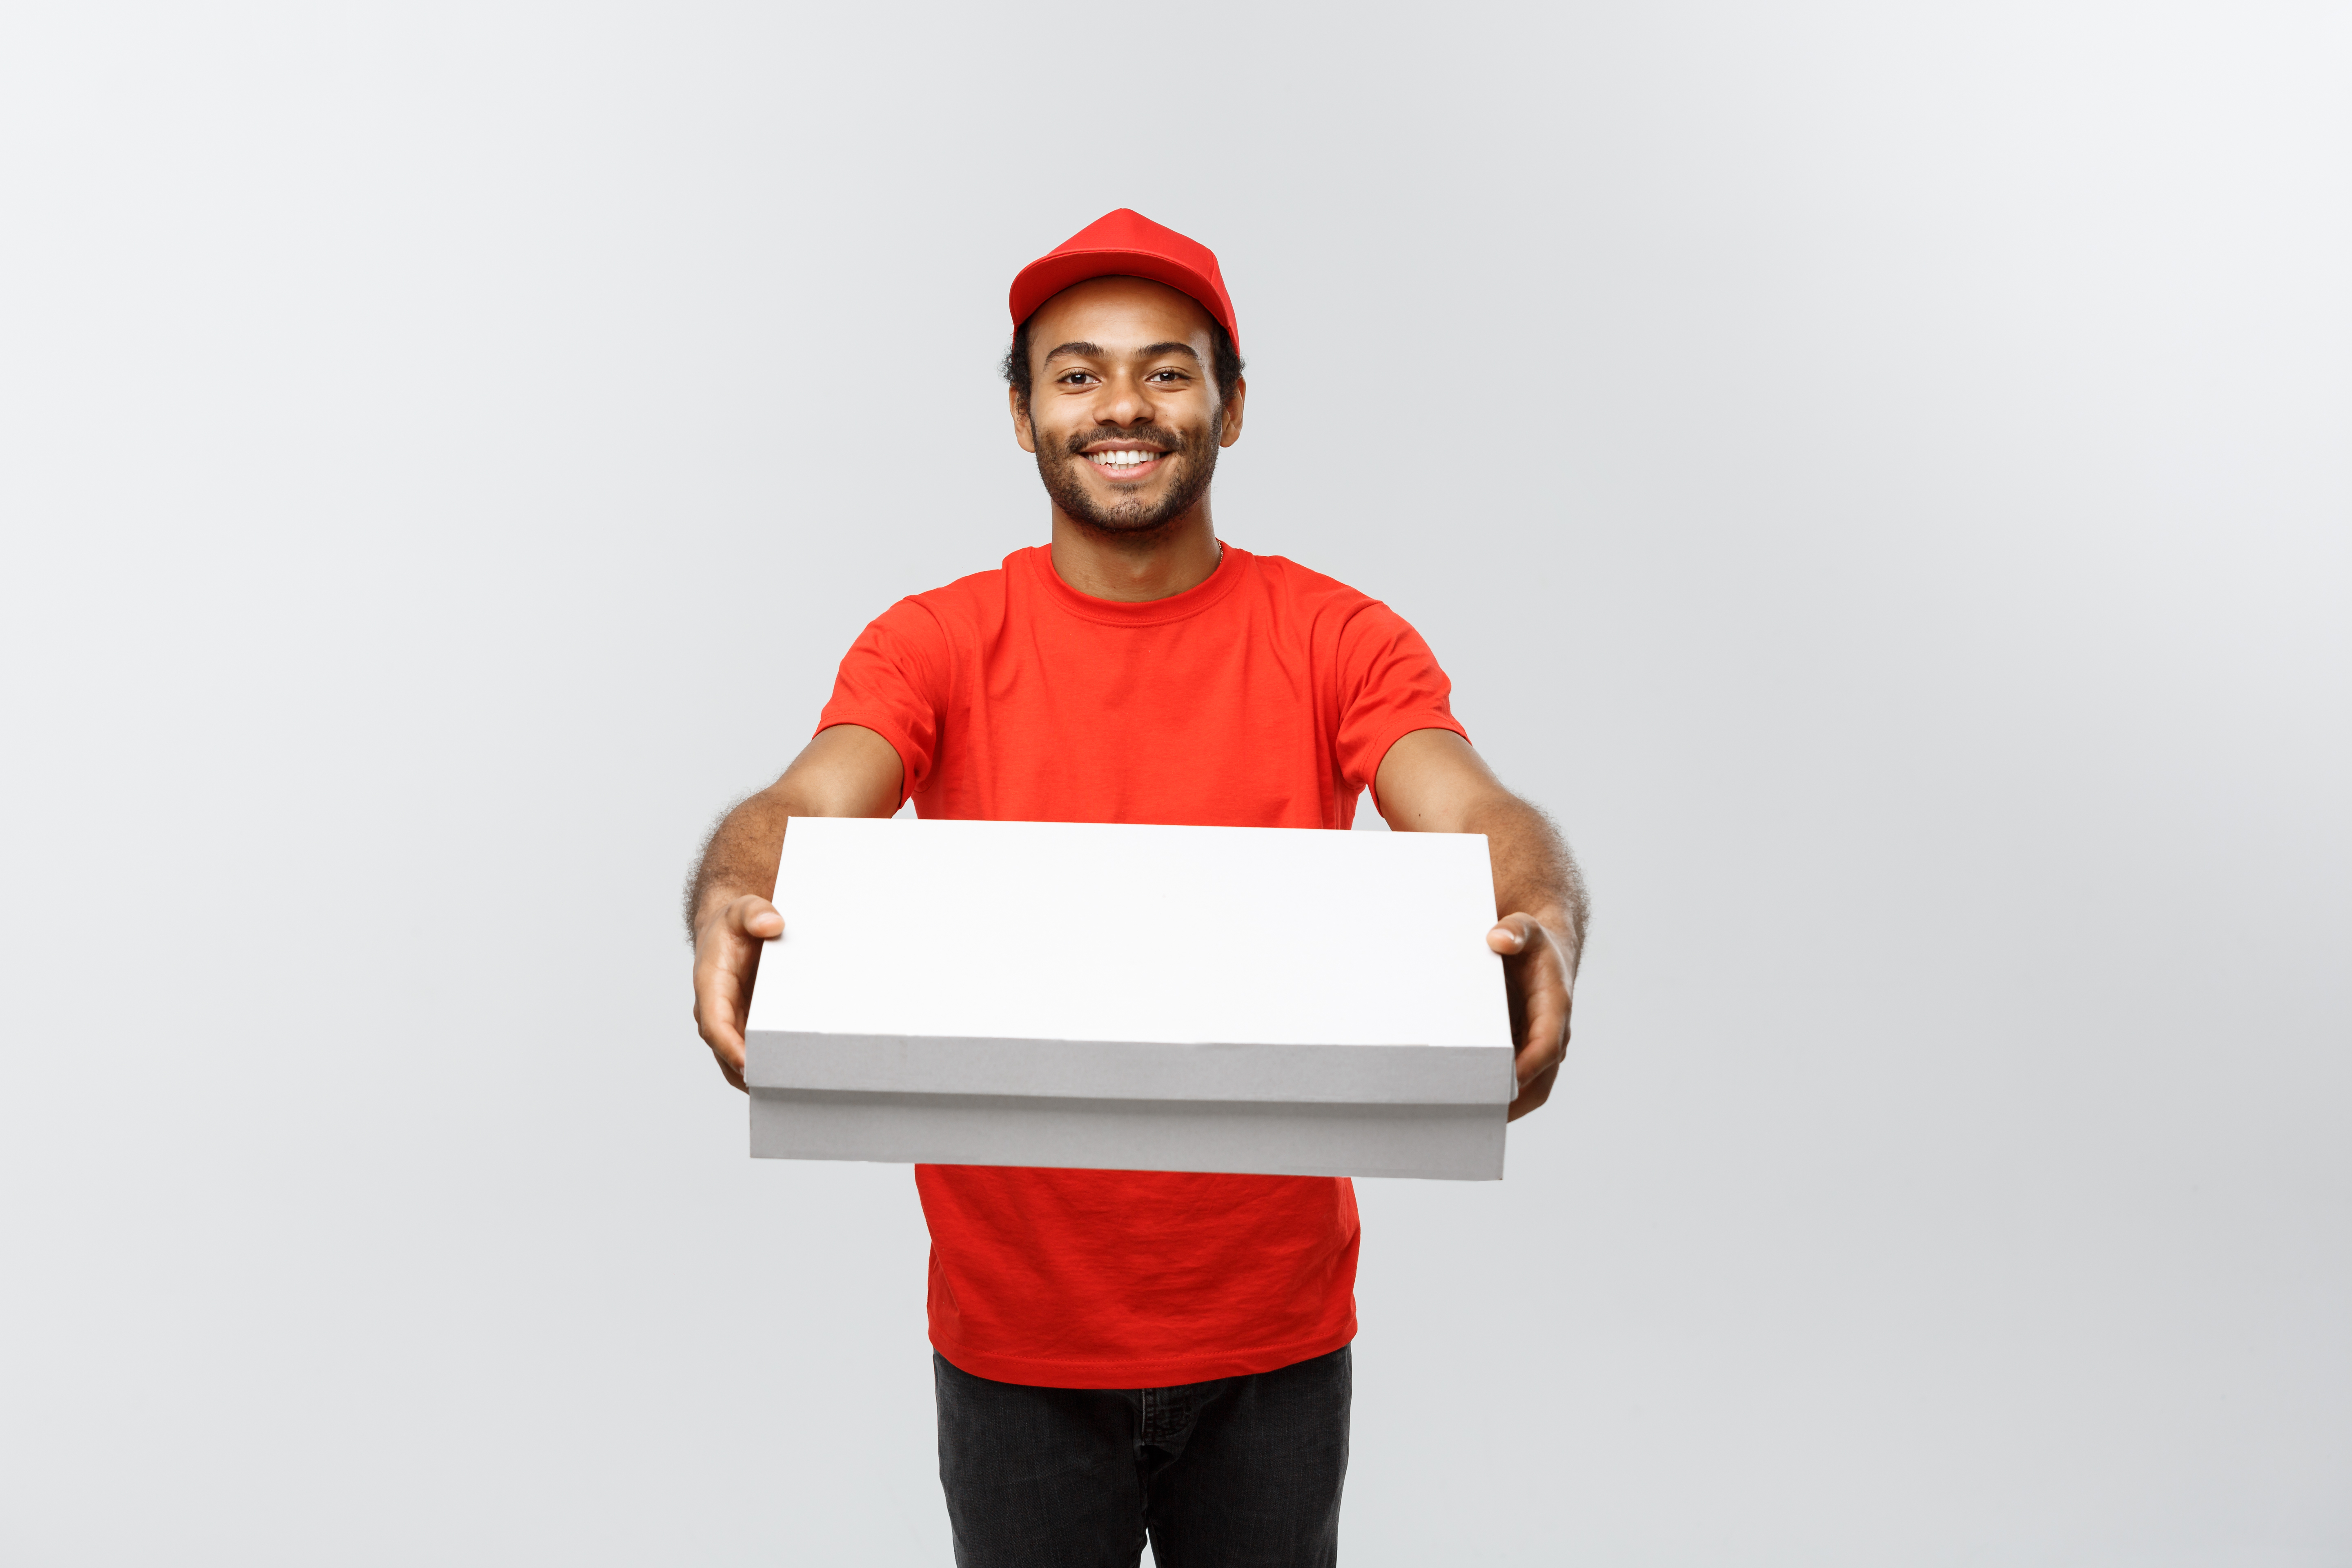 Weird Delivery facts